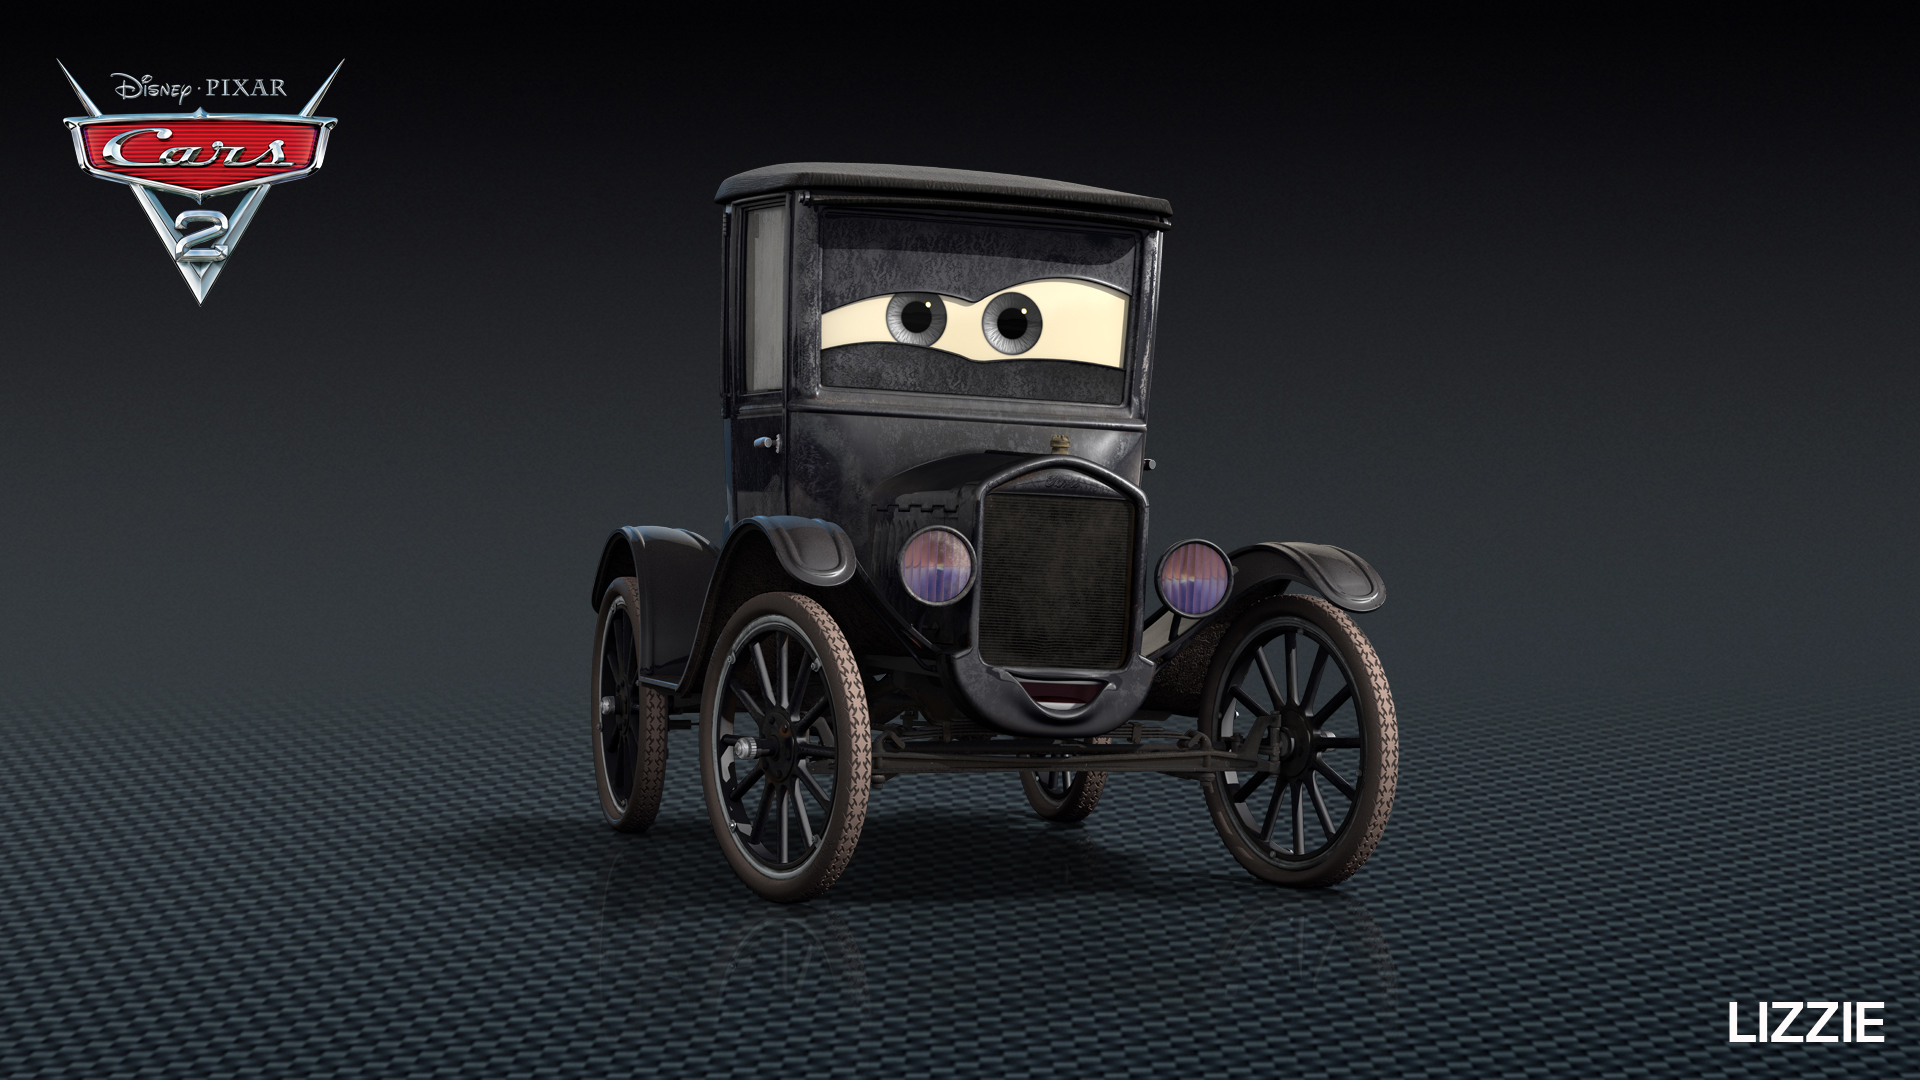 More Cars 2 Character Images Descriptions Video